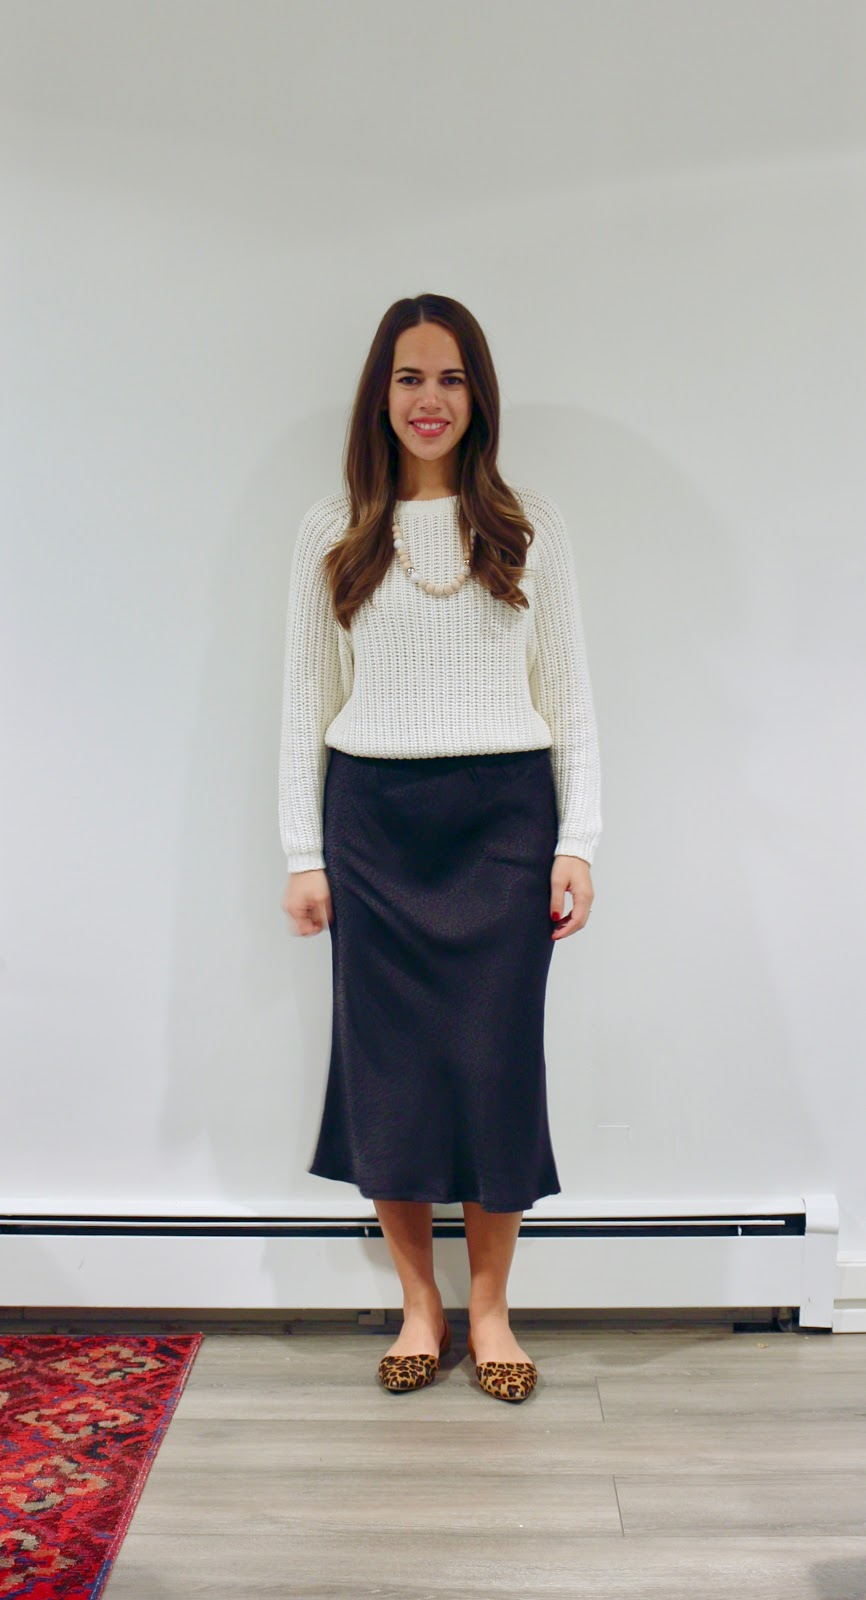 Jules in Flats - H&M Jacquard Silky Midi Skirt with Cropped Knit Sweater (Business Casual Fall Workwear on a Budget)